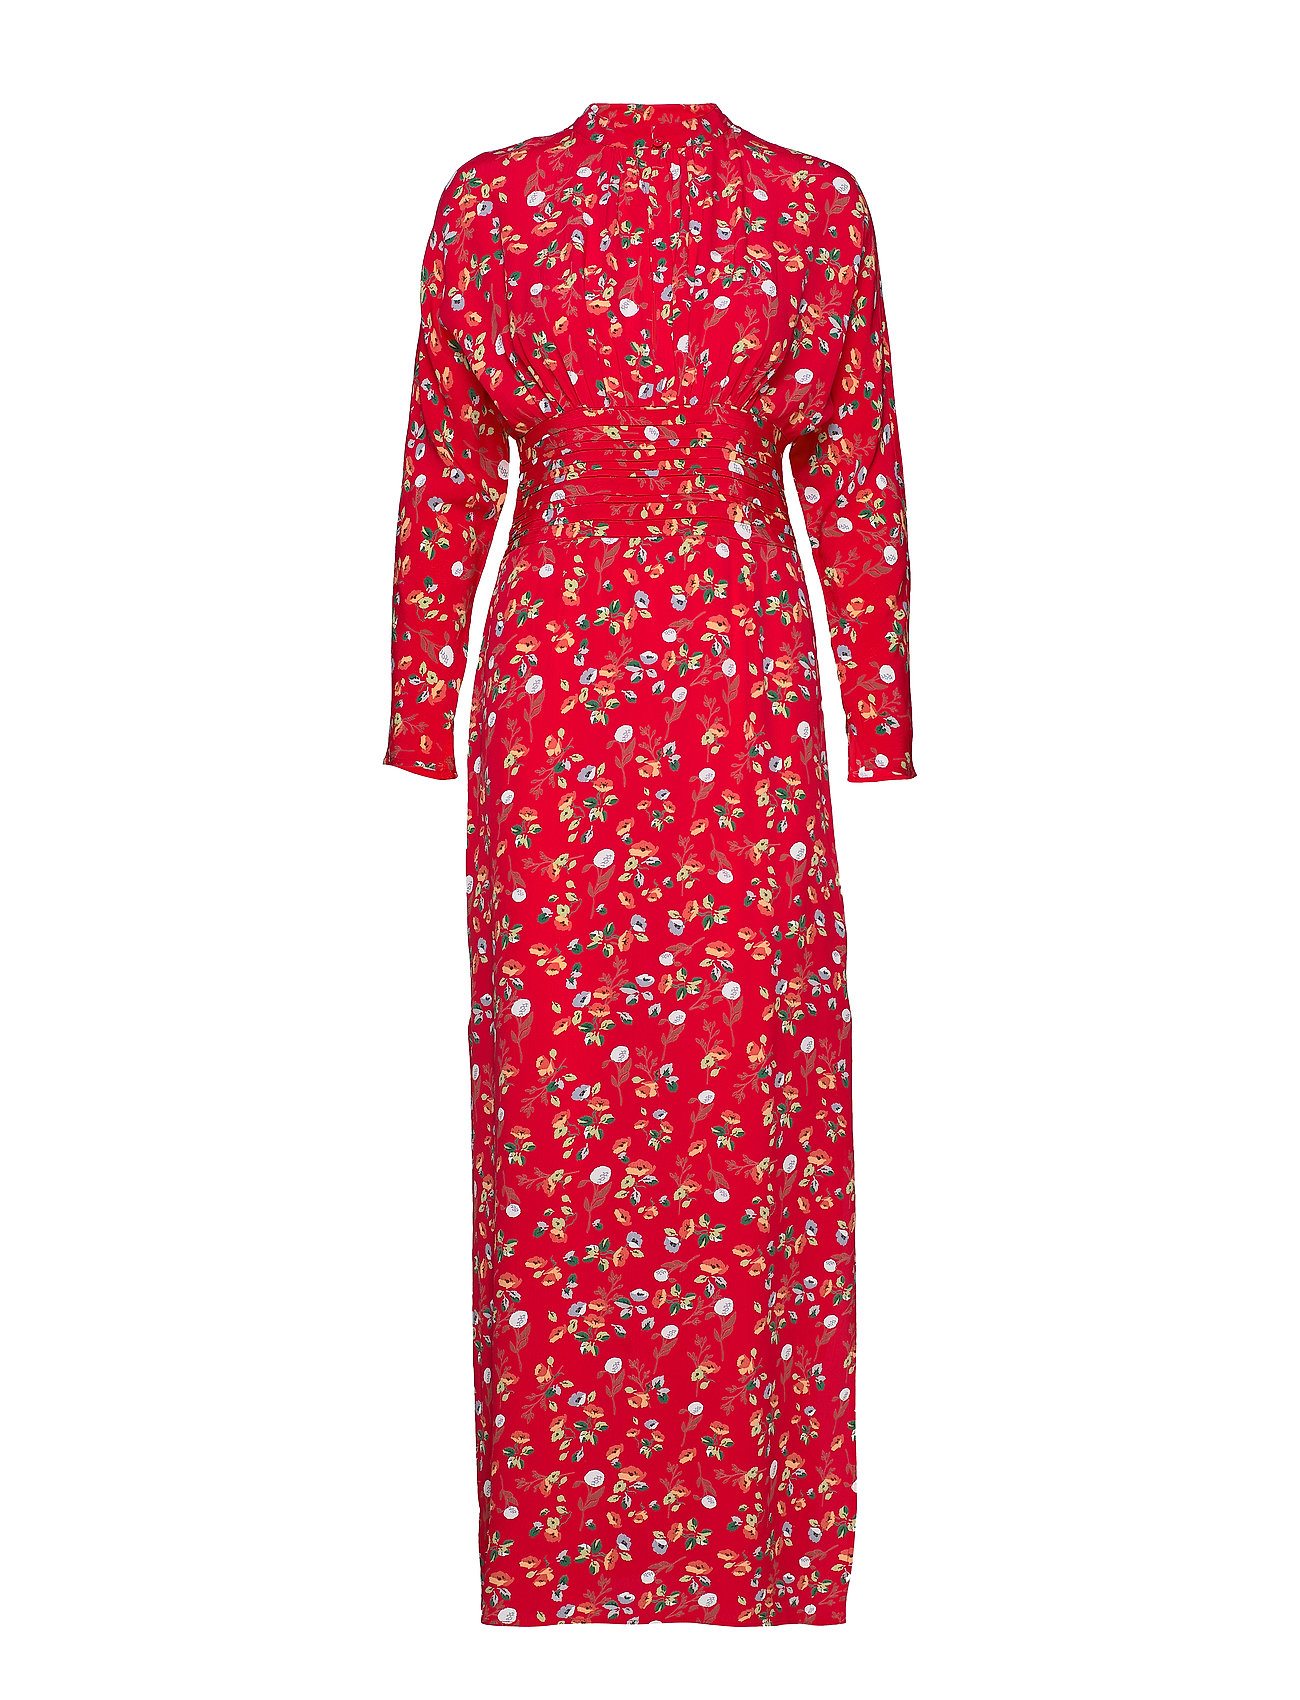 by Ti Mo Gathers Gown - RED GARDEN